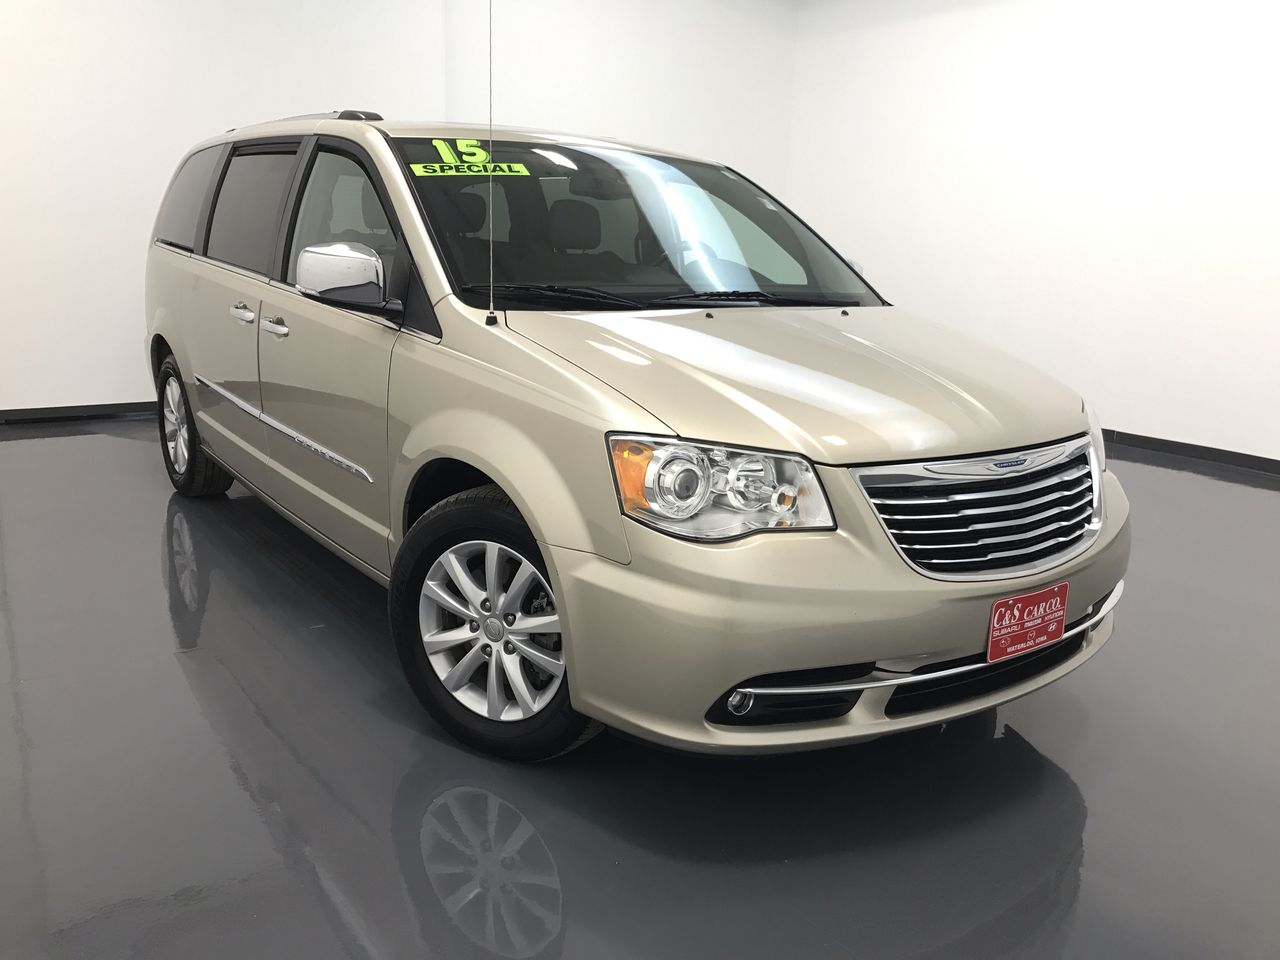 2015 Chrysler Town & Country  - C & S Car Company